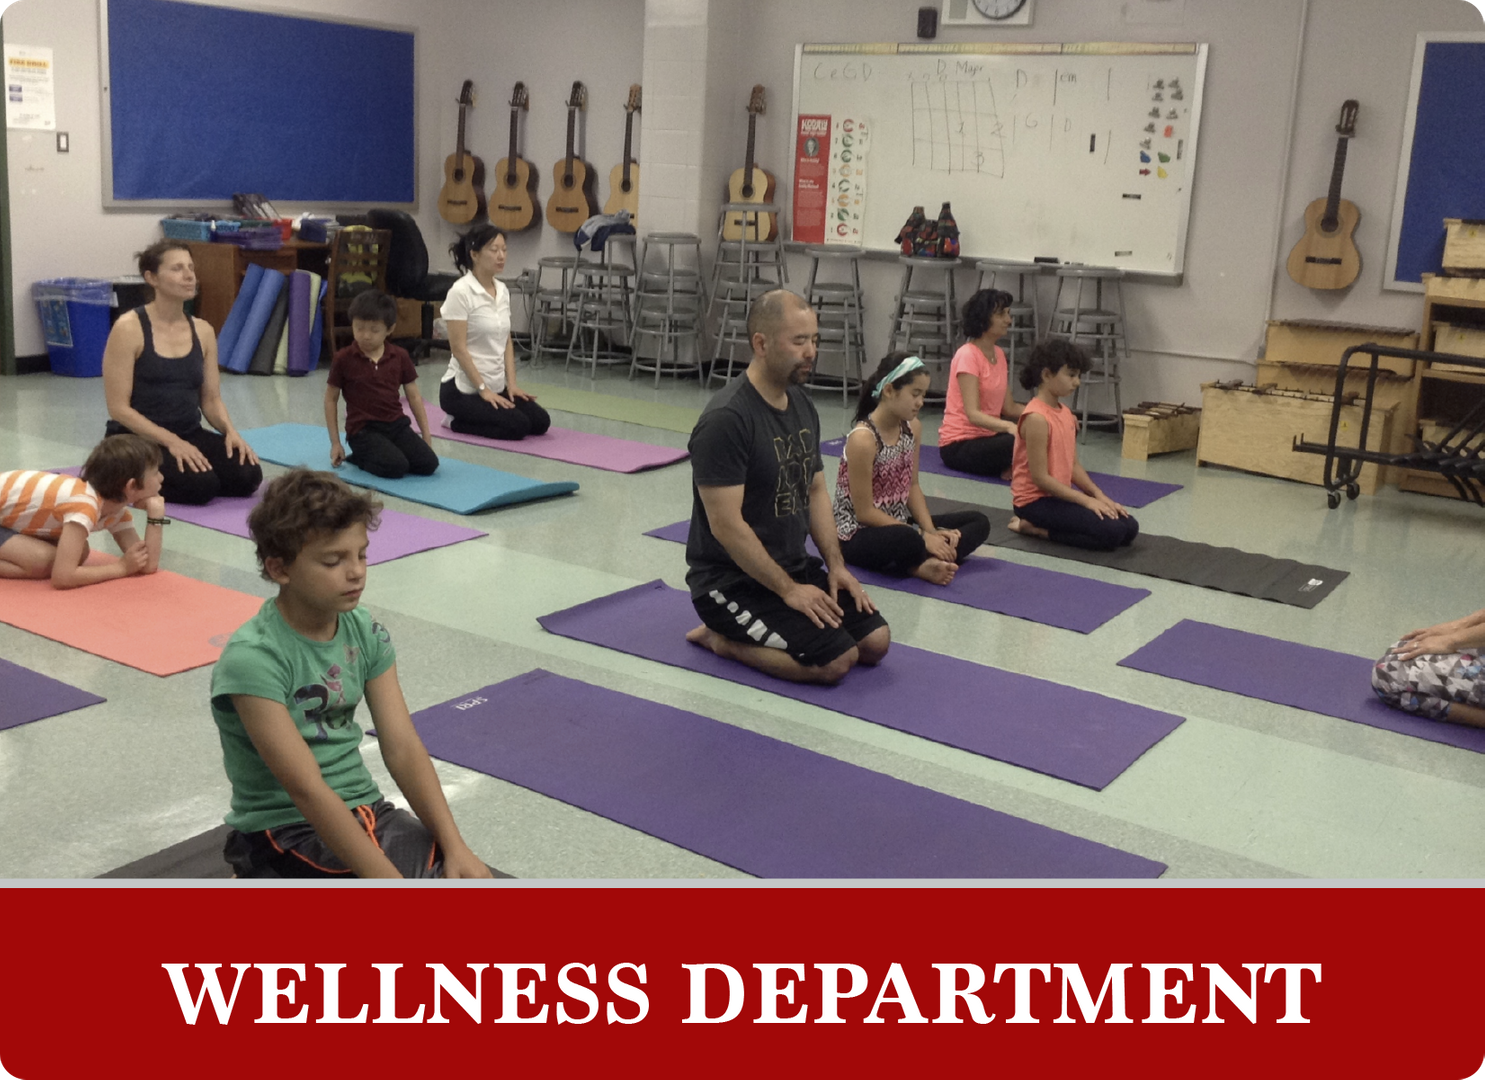 Wellness Department: Students and teachers doing yoga